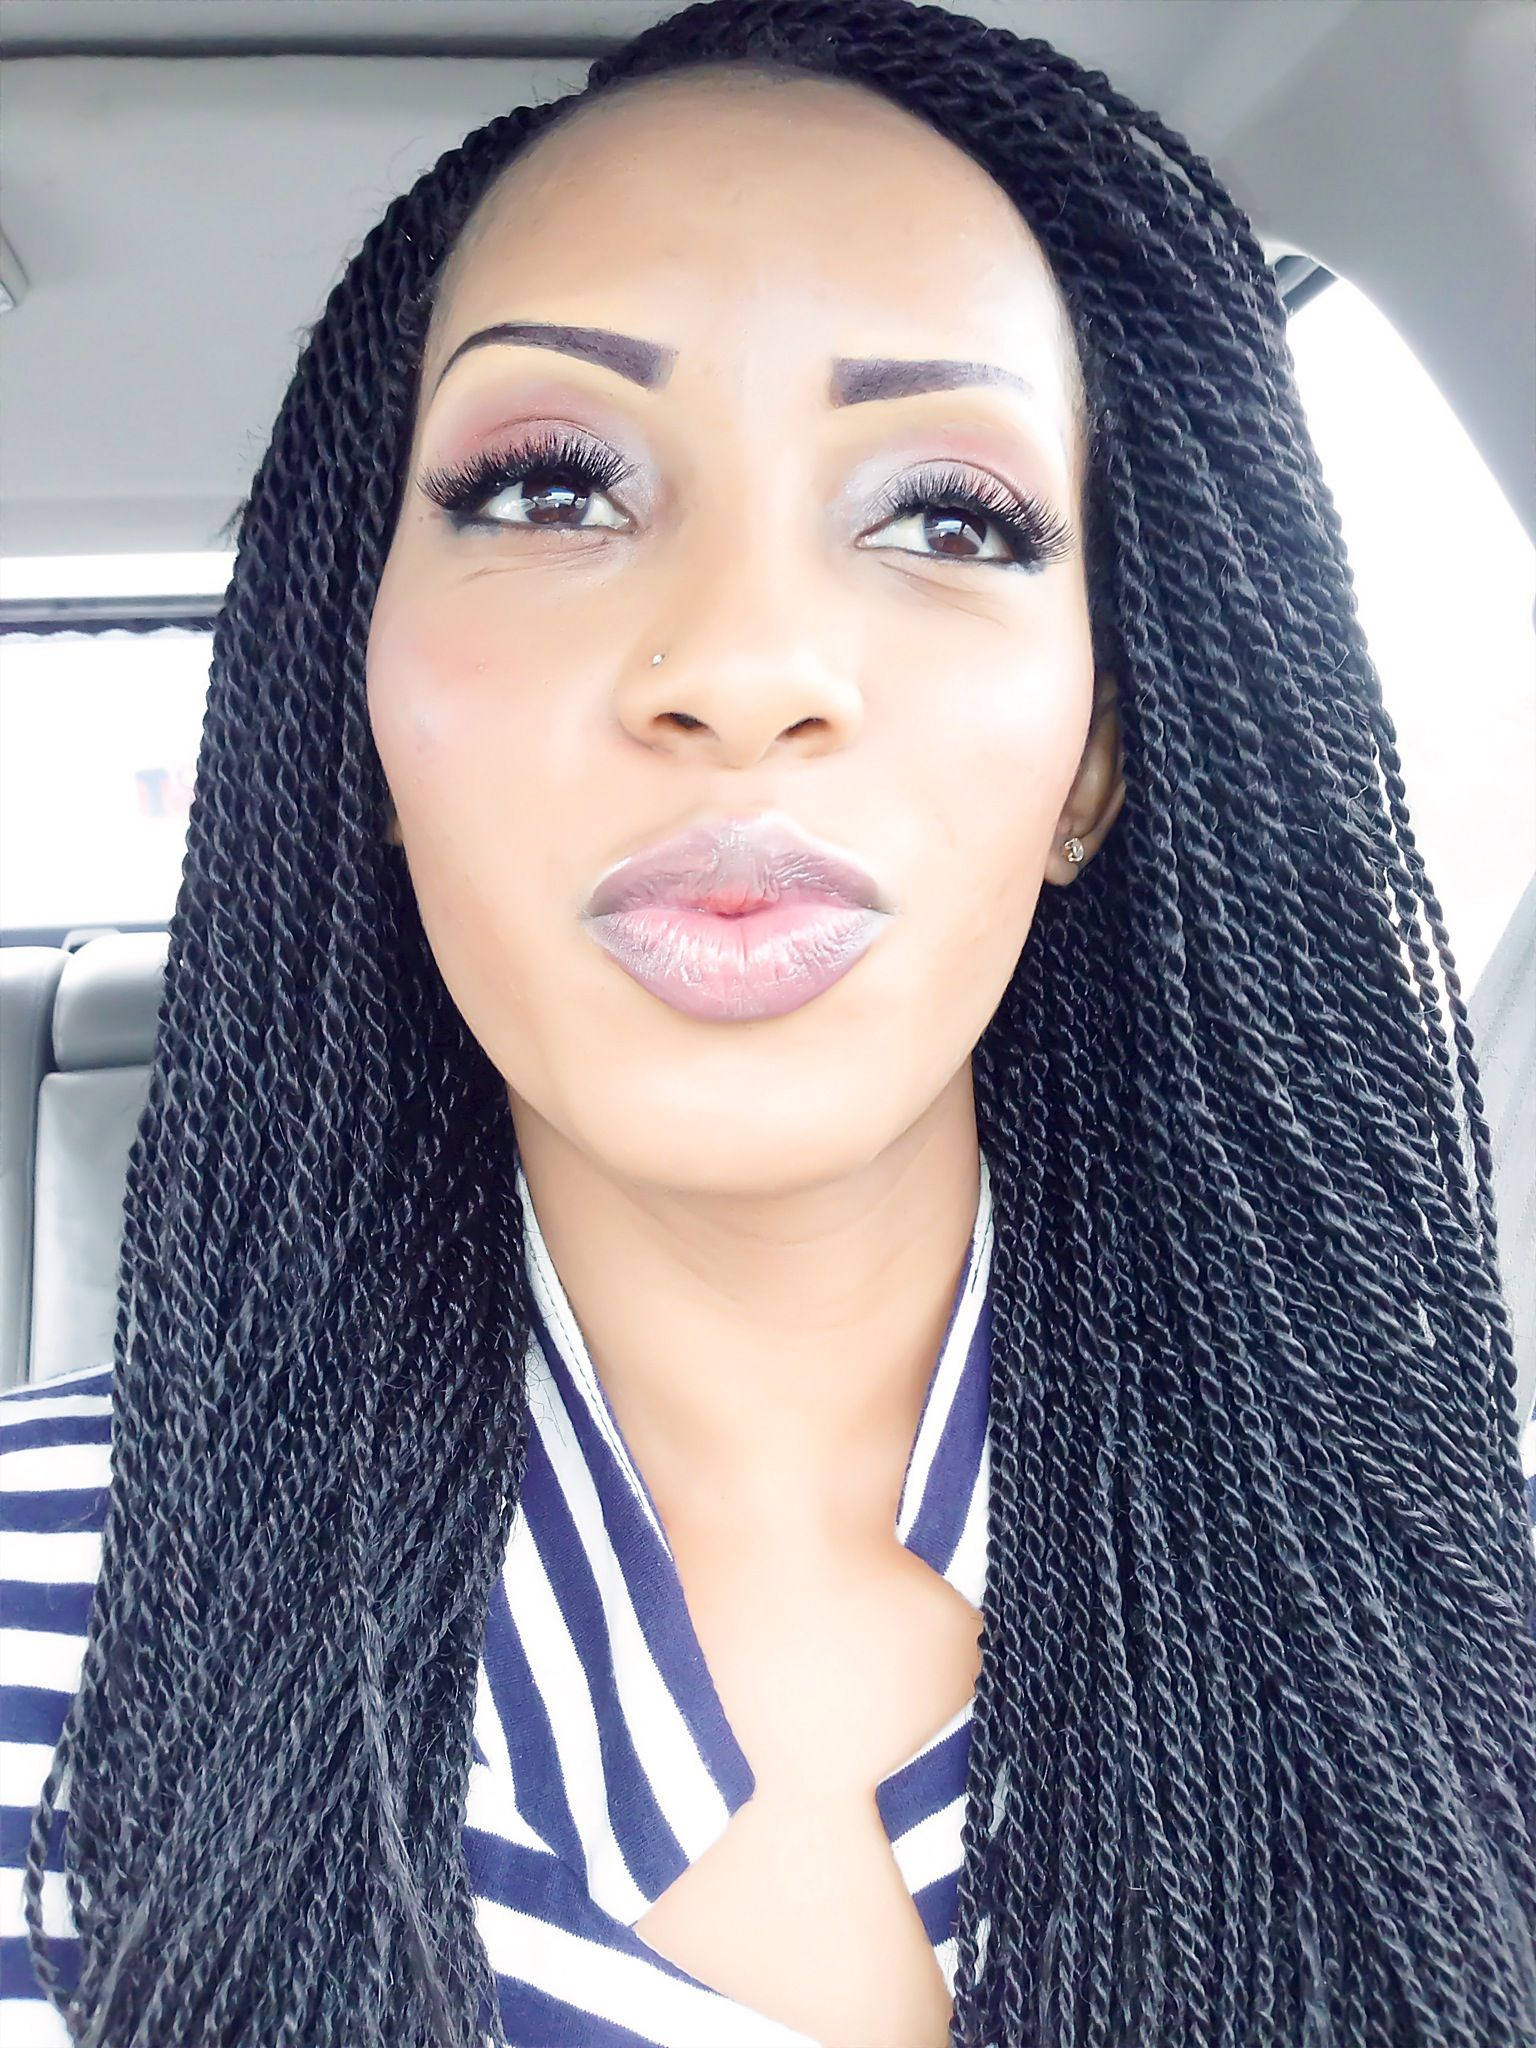 Super 1000 Images About Braids On Pinterest Protective Styles Two Hairstyle Inspiration Daily Dogsangcom